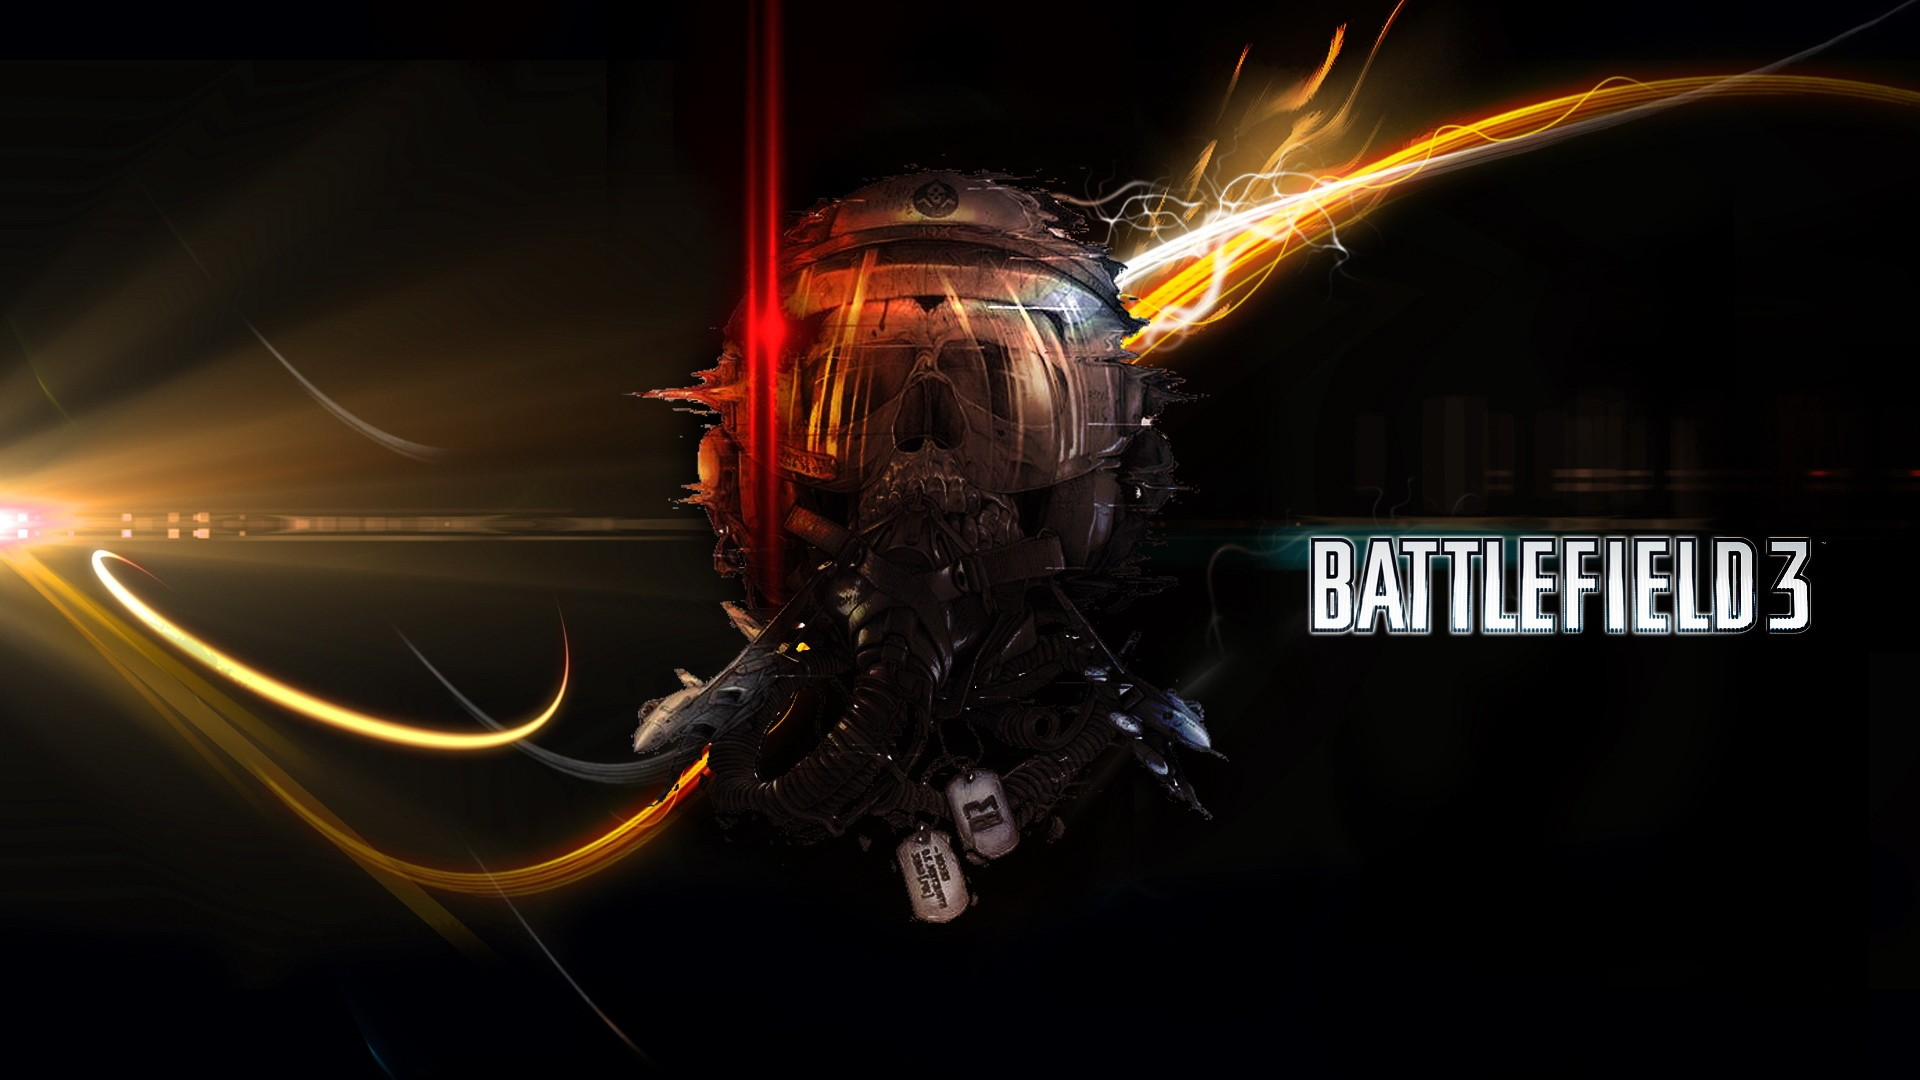 Cool Battlefield 4 Fire Armor In Black Background: Battlefield Wallpaper 1920x1080